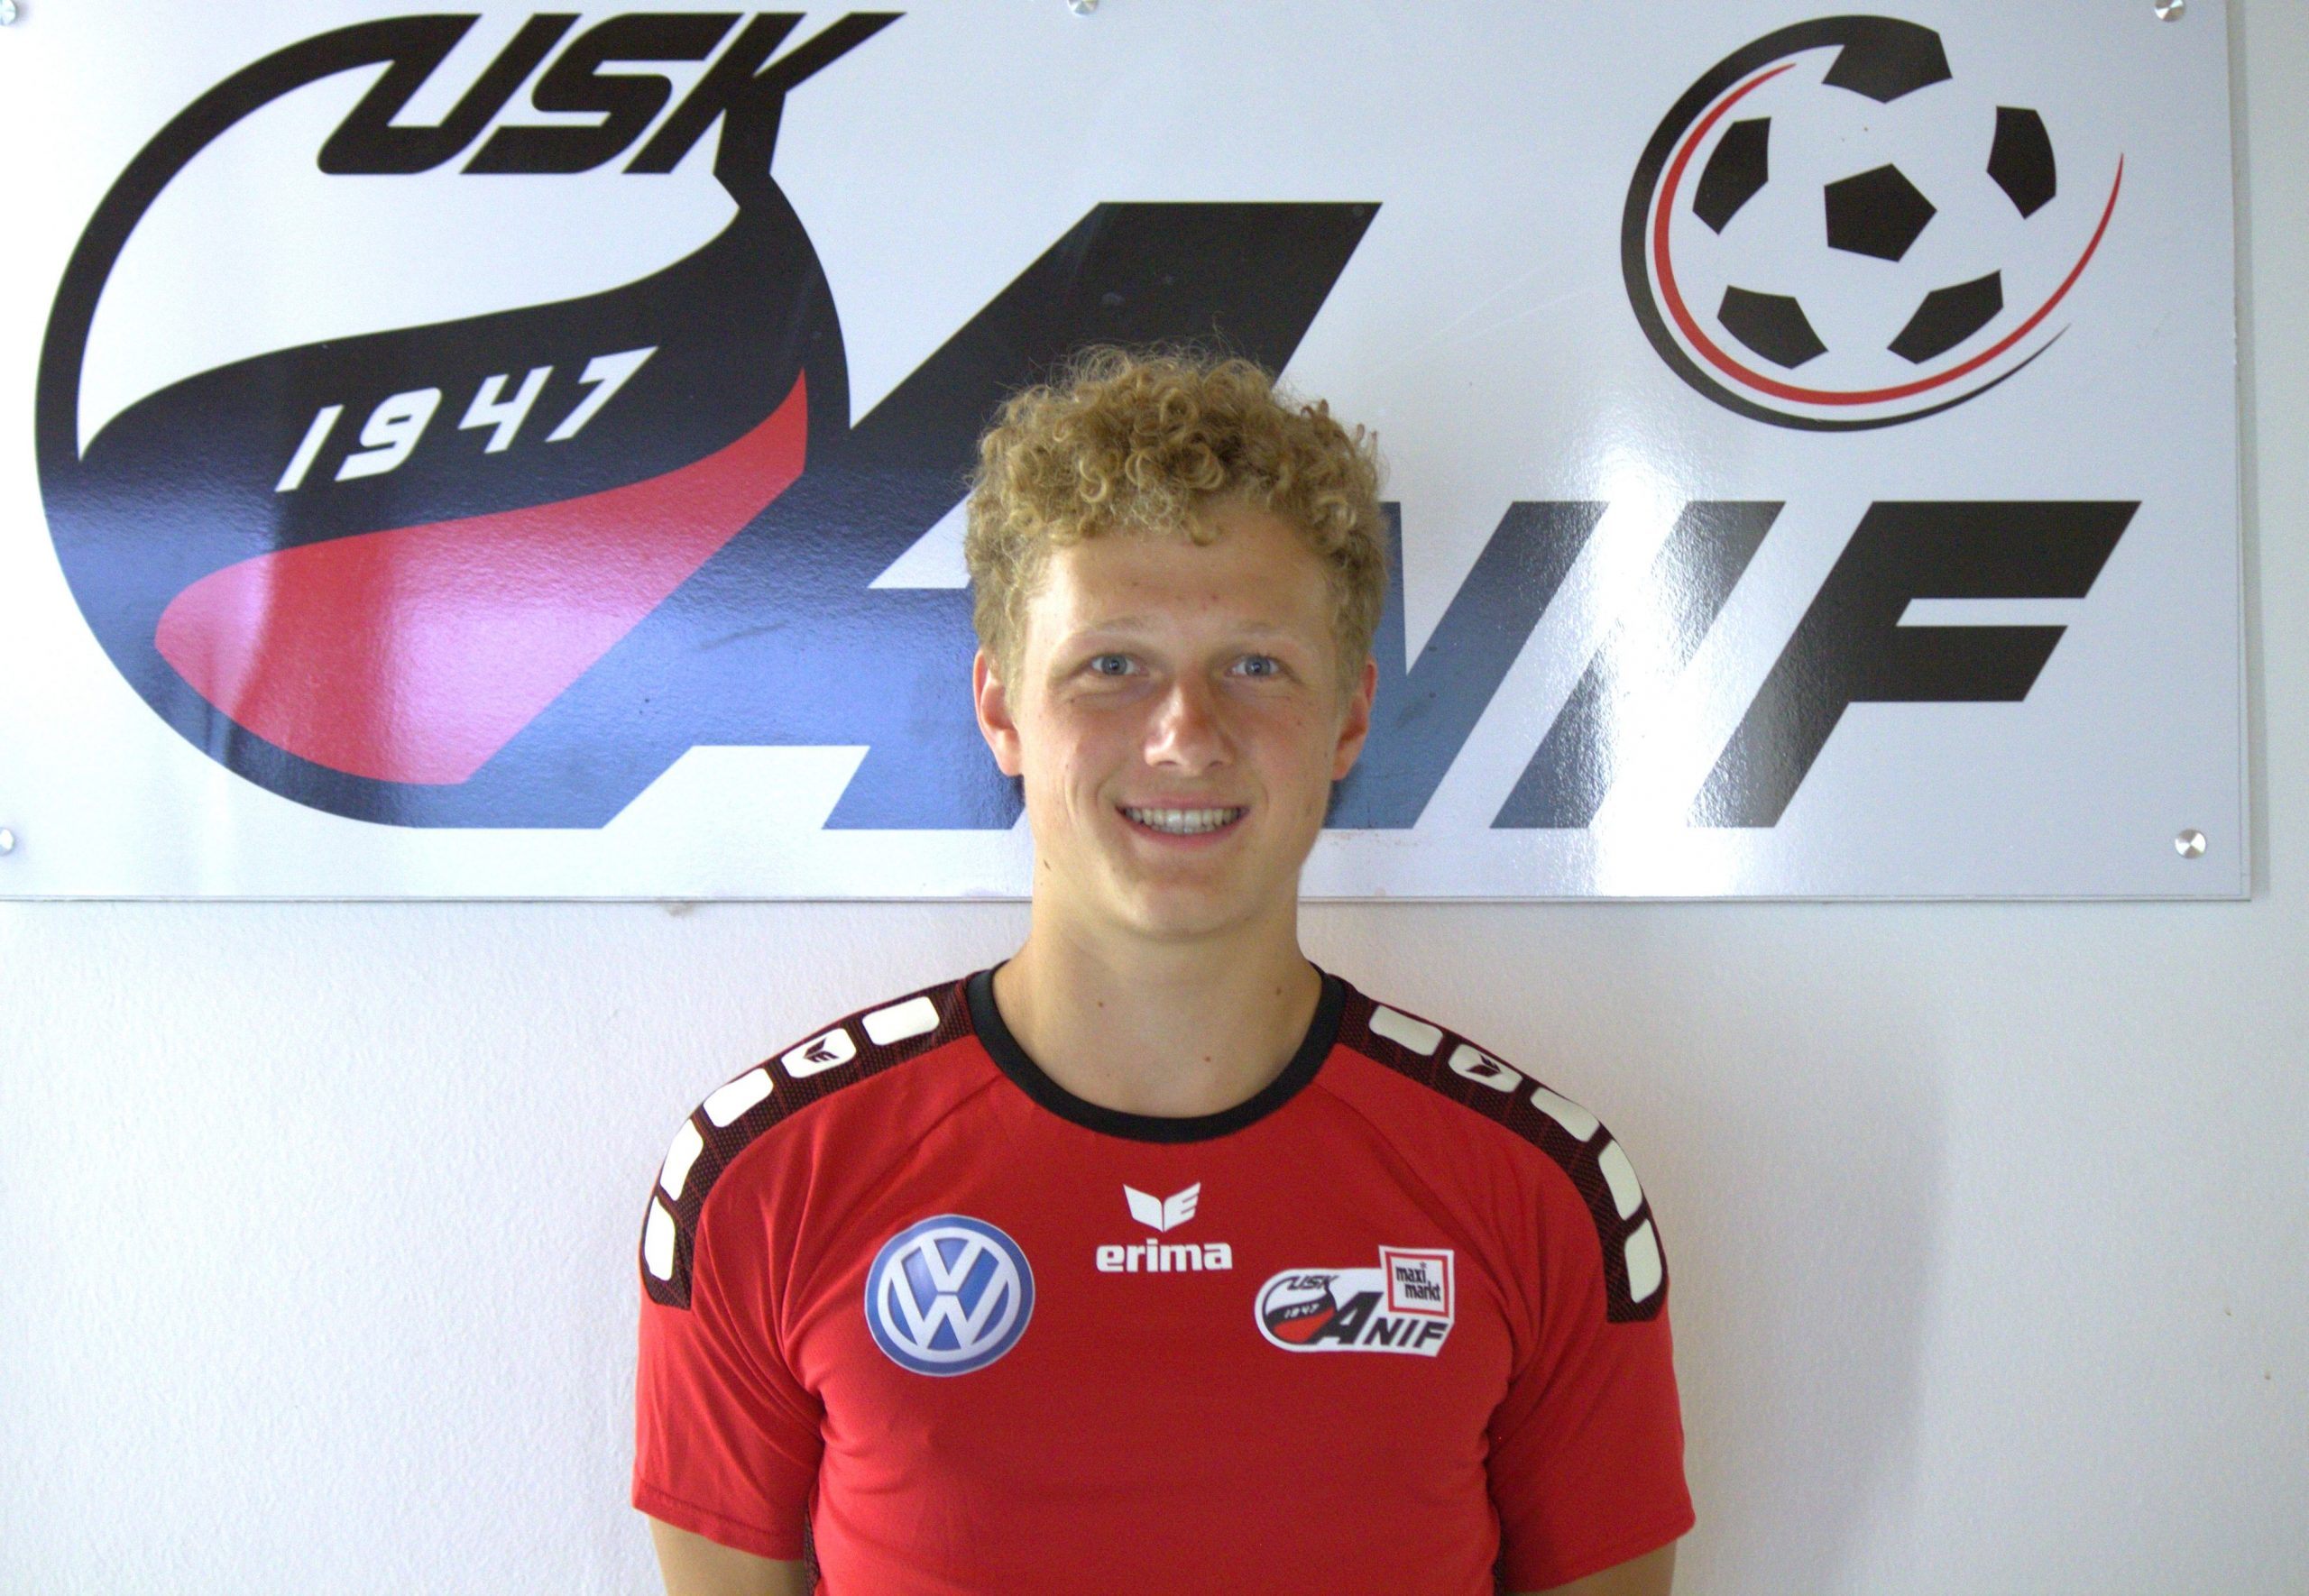 Fabian Windhager, USK-Anif